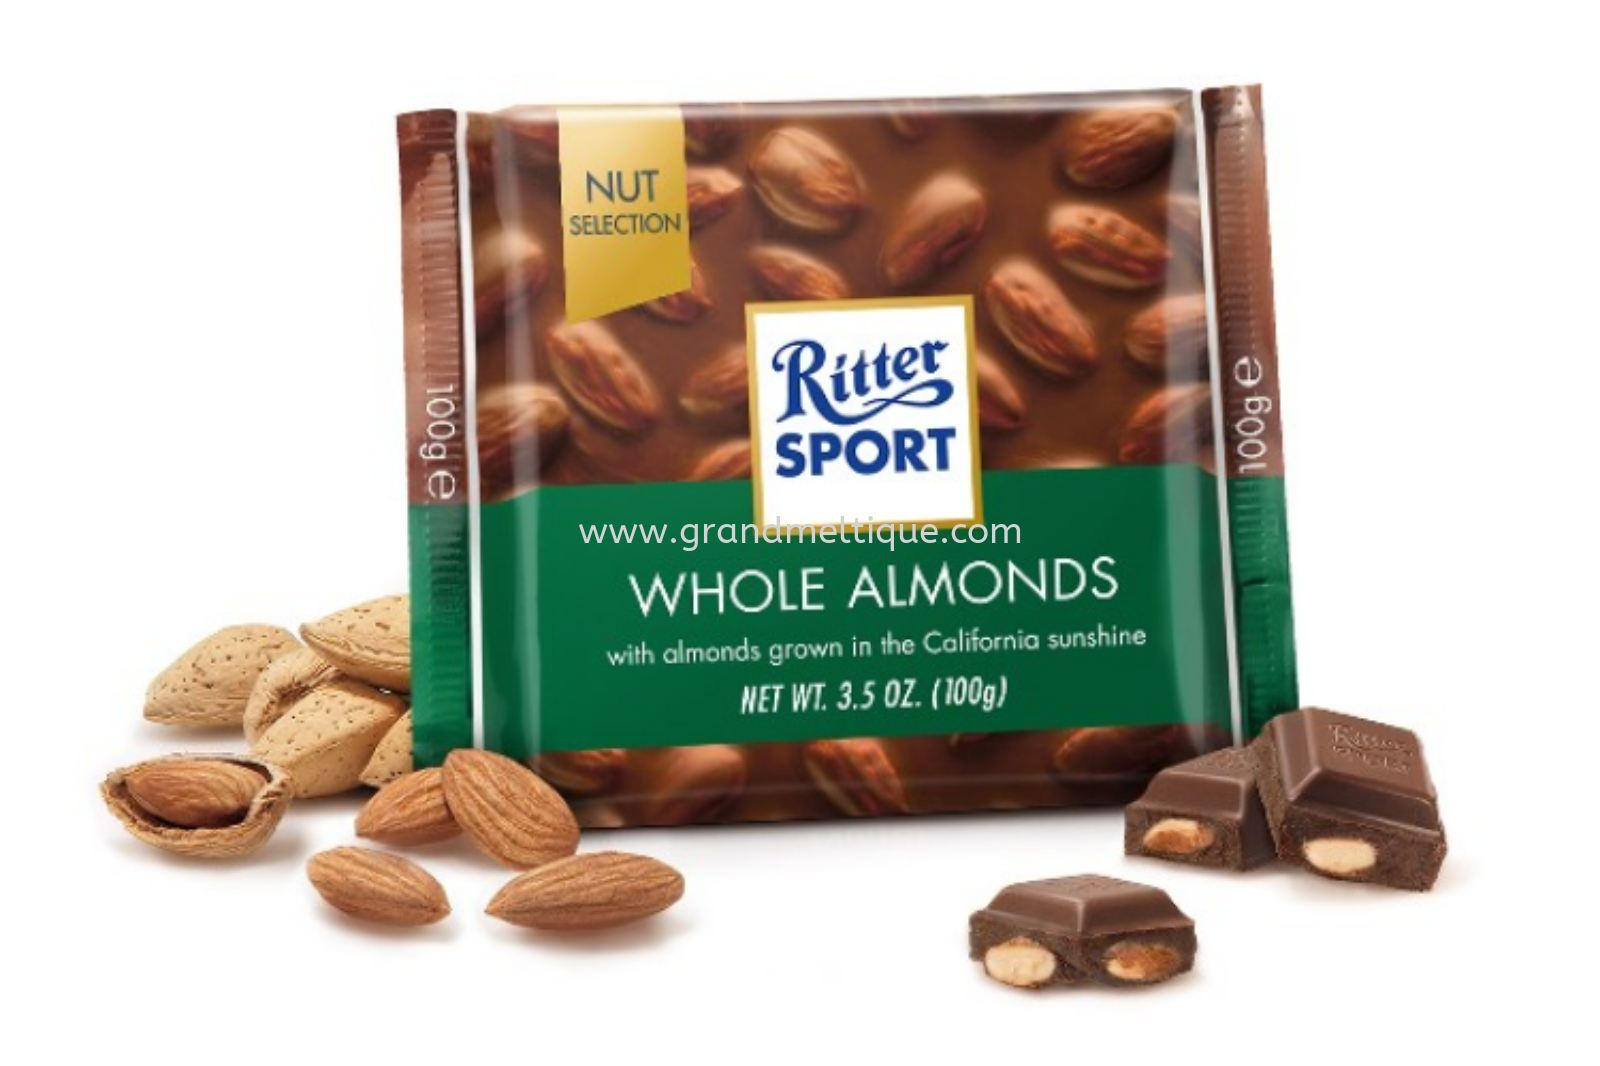 RITTER SPORT WHOLE ALMONDS 瑞特斯波杏仁巧克力100G